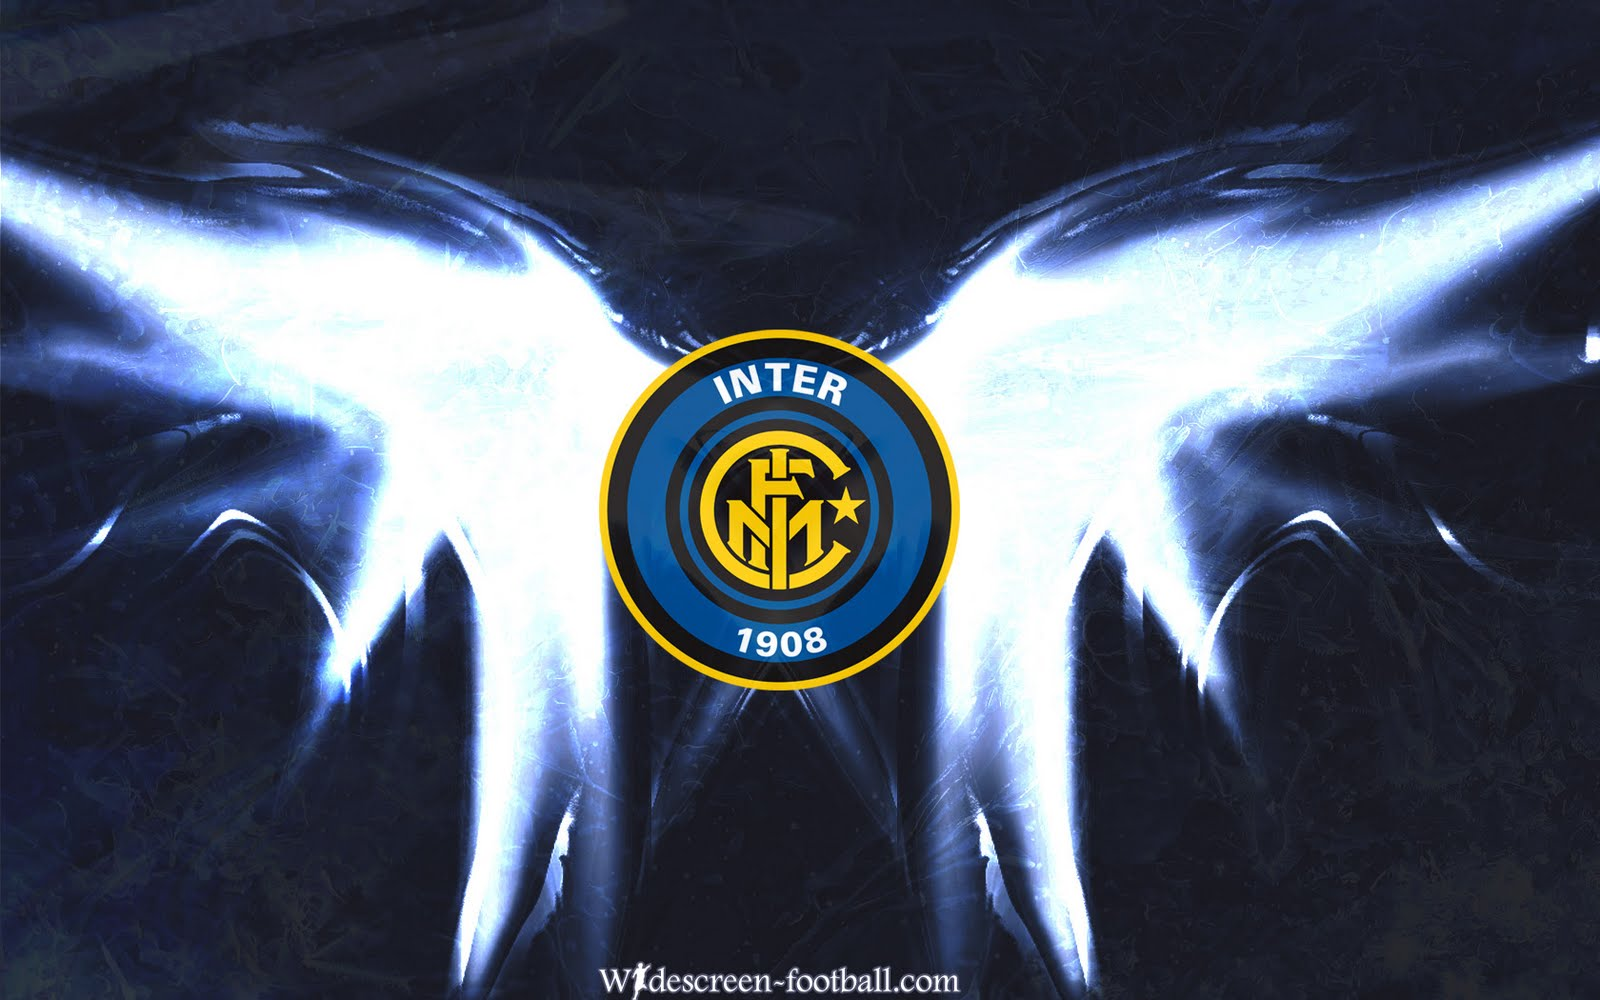 inter milan wallpaper 2012 - photo #3